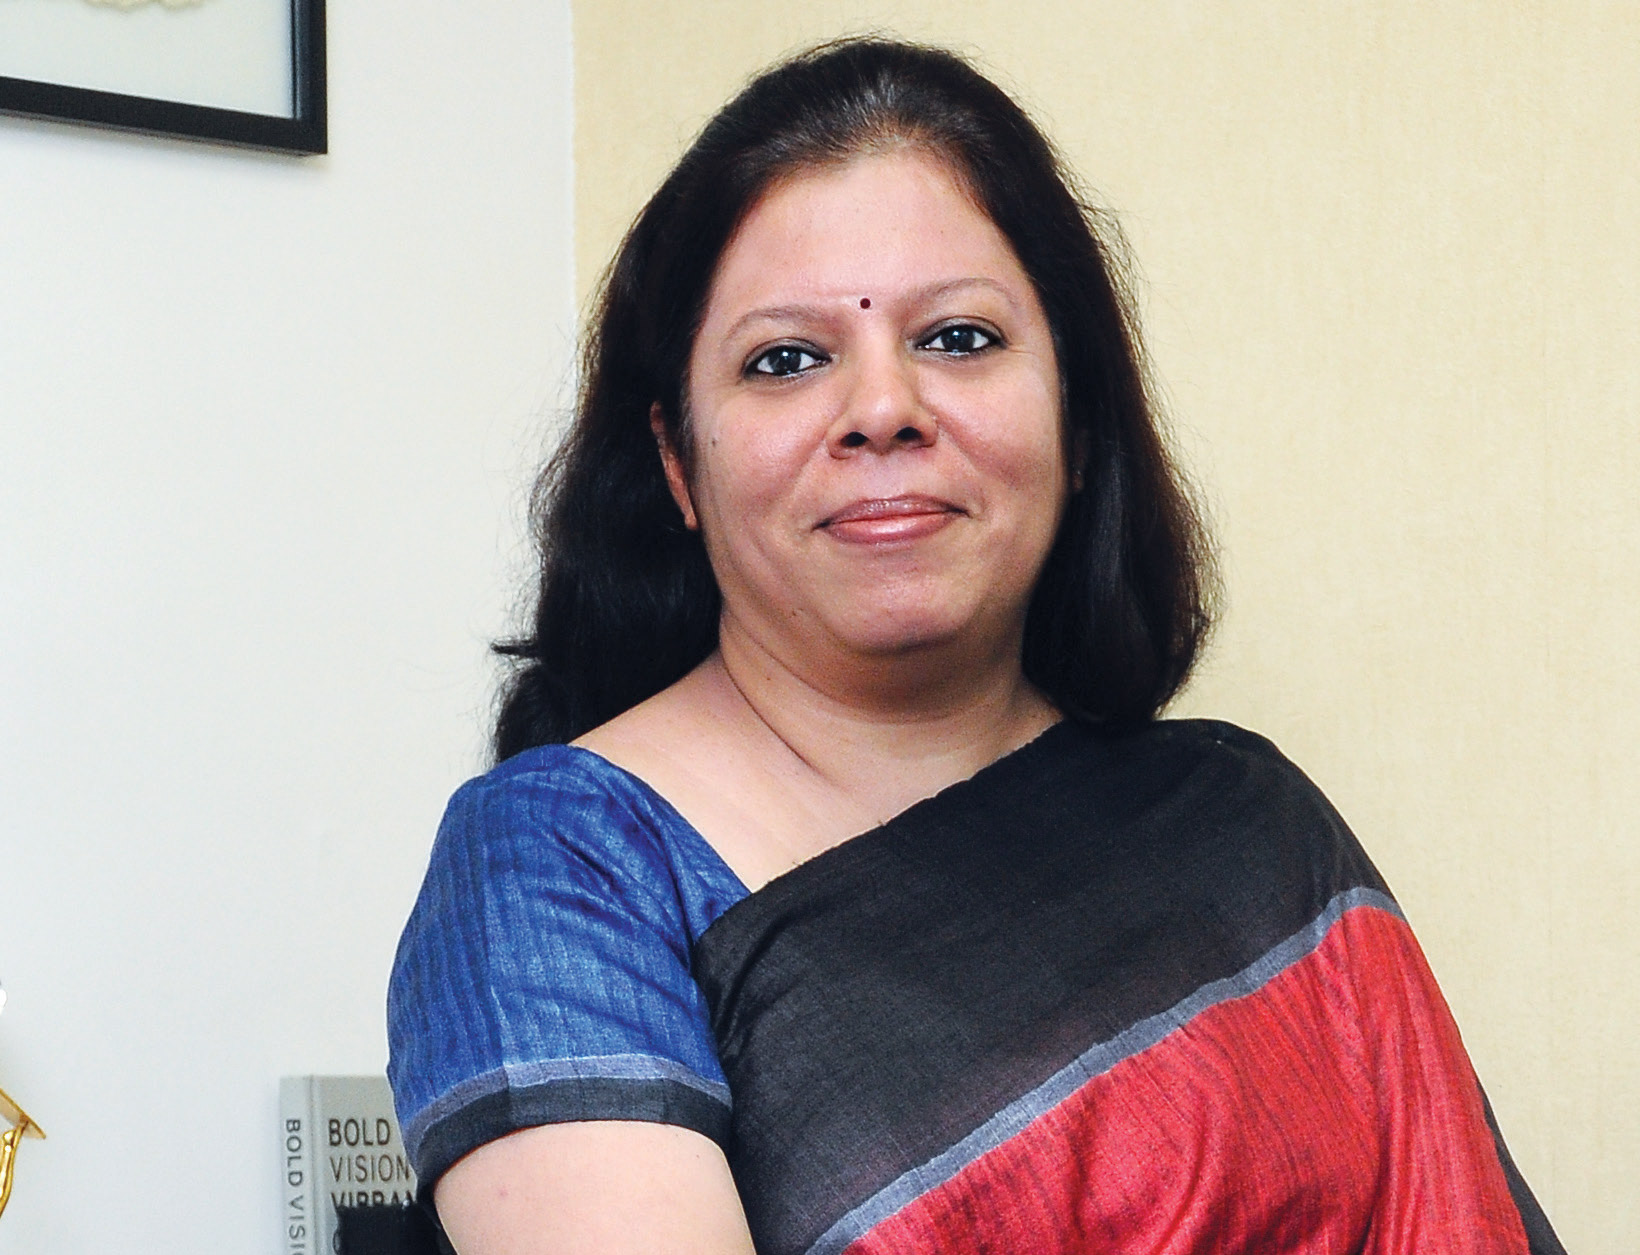 Anita Arjundas, Mahindra Lifespaces, Mahindra Happinest, Mahindra World City, Mahindra affordable housing, Best professionals in real estate, Women professionals in real estate, India real estate news, Indian realty news, Real estate news India, Indian property market news, Track2Realty, Investment in property